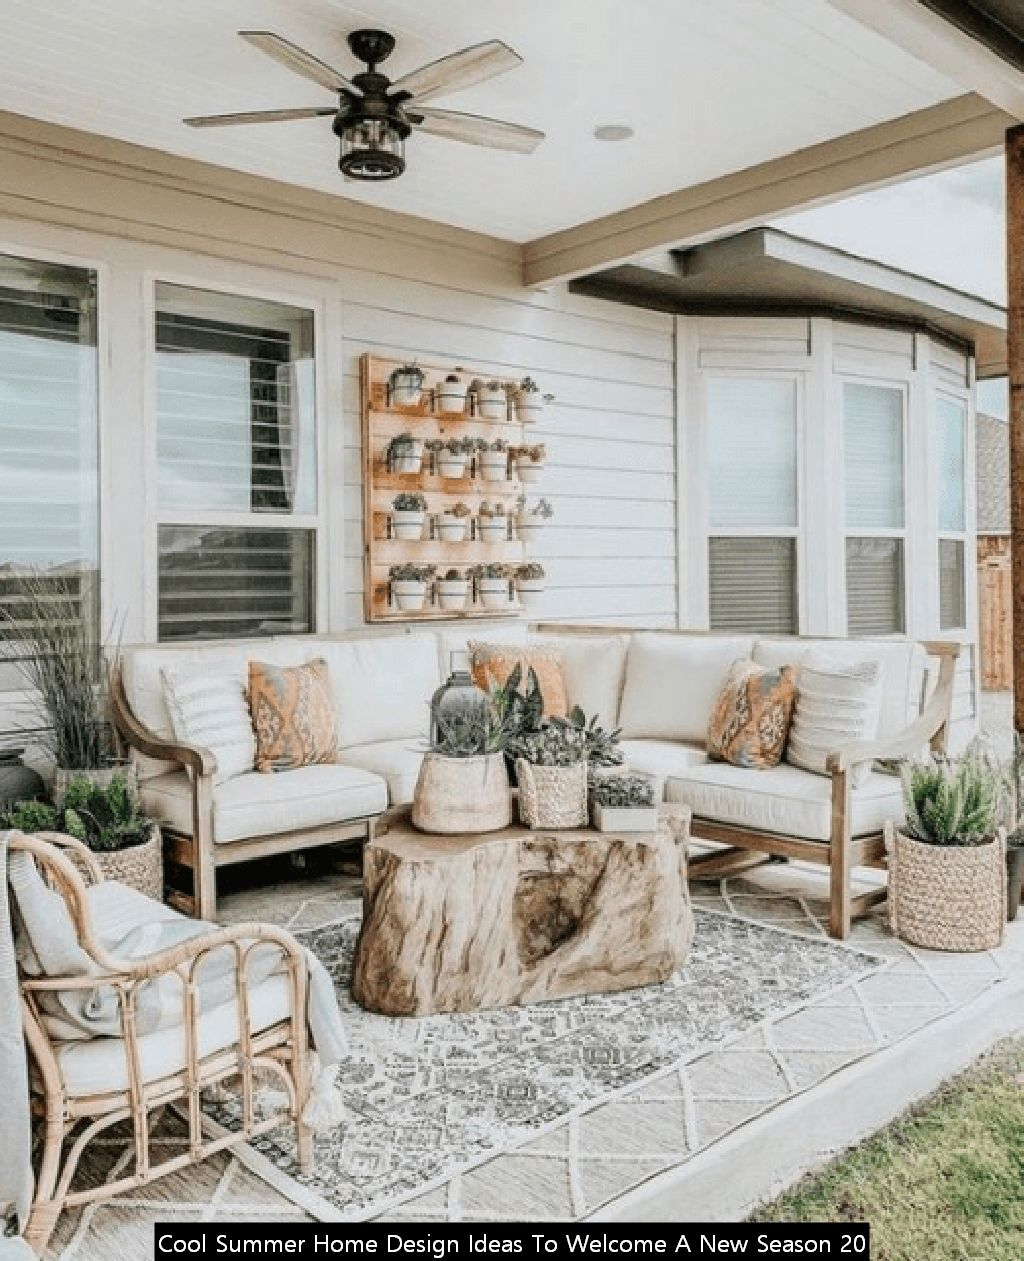 Cool Summer Home Design Ideas To Welcome A New Season 20